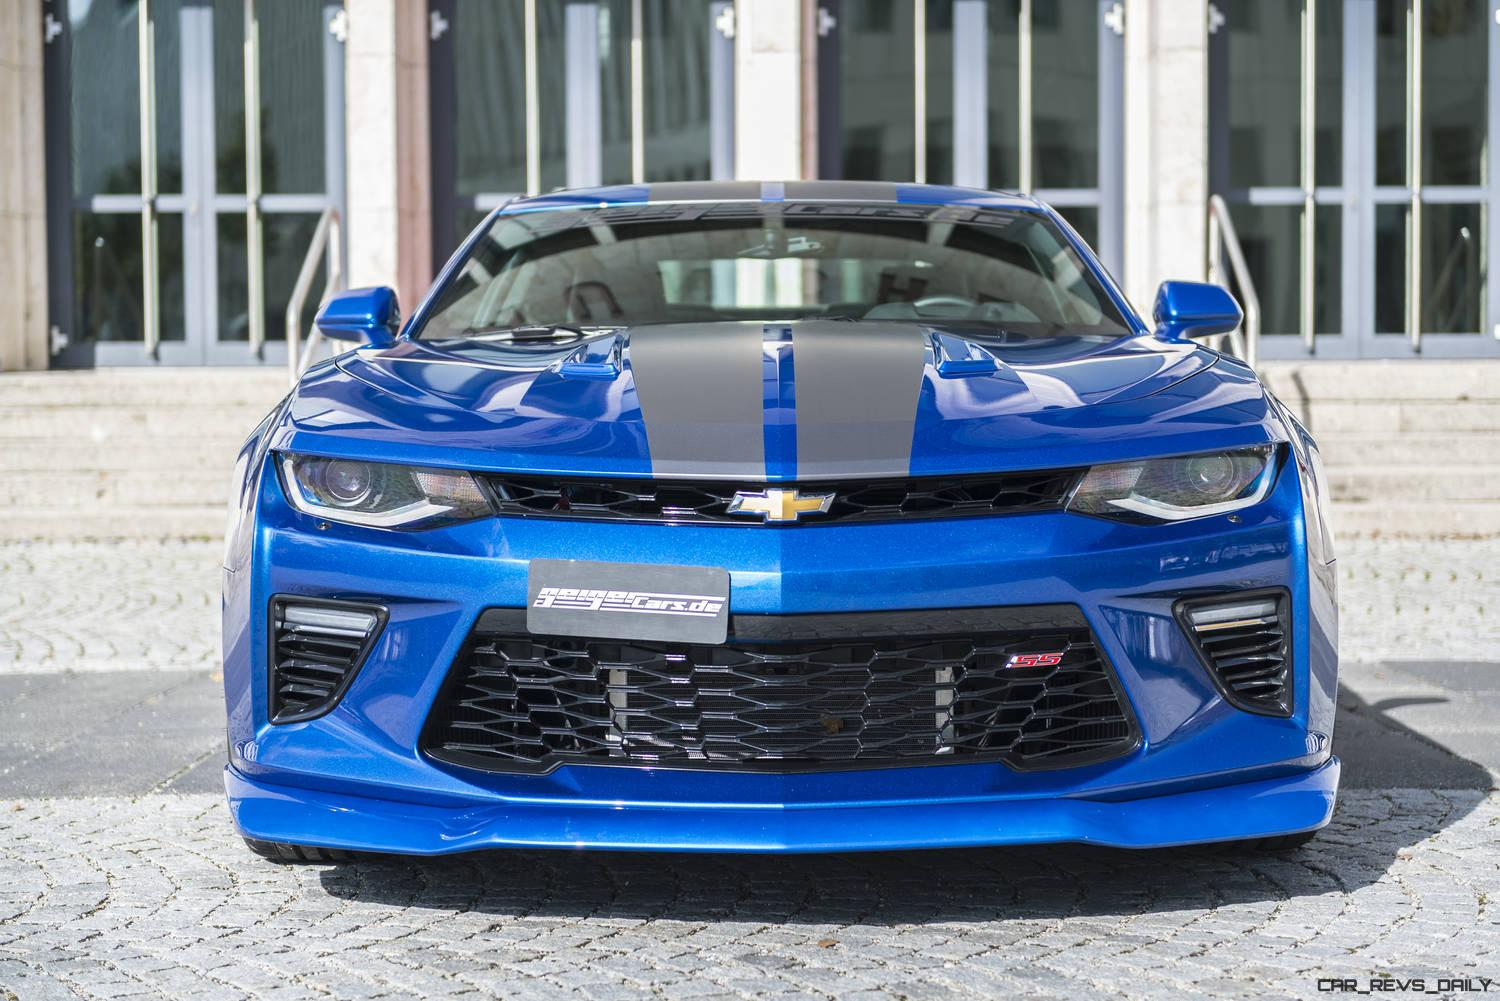 csm_geigercars-camaro-50th-anni-stripes_13_da4b7b5e37